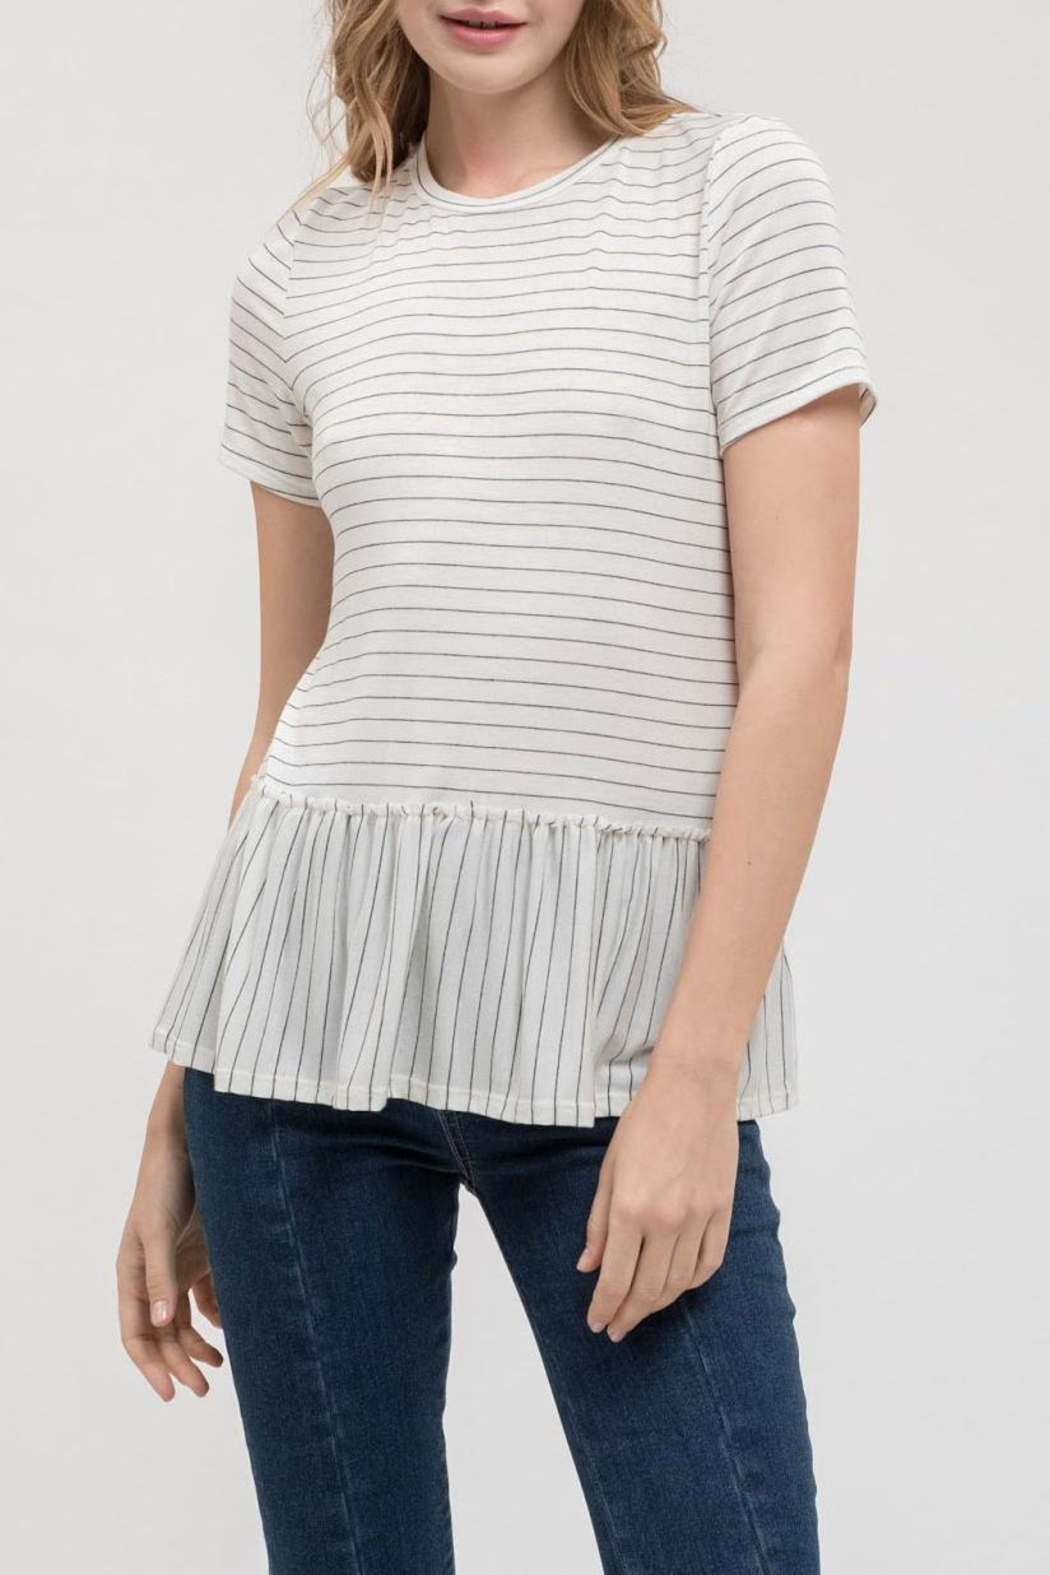 Blu Pepper Baby Striped Tee - Main Image